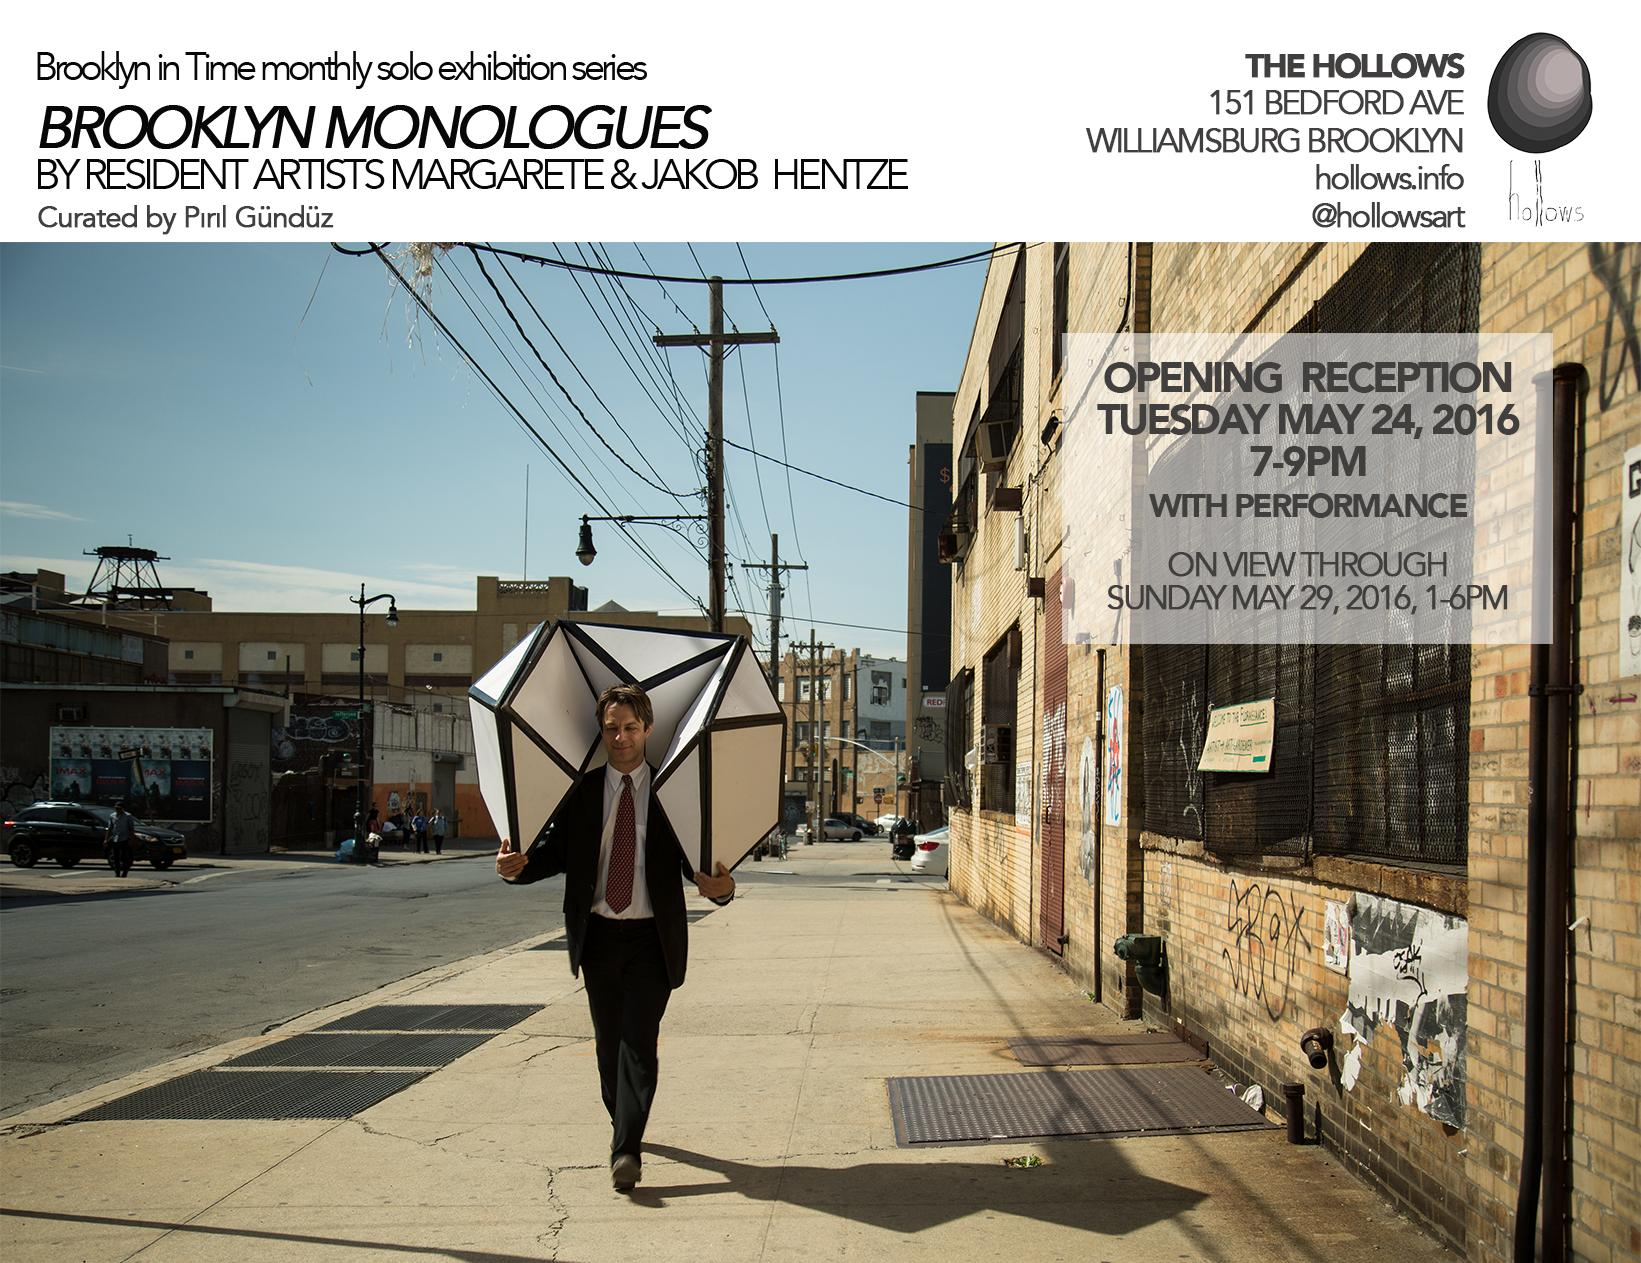 Brooklyn Monologues by Resident Artists Margarete & Jakob Hentze  | Events Calendar